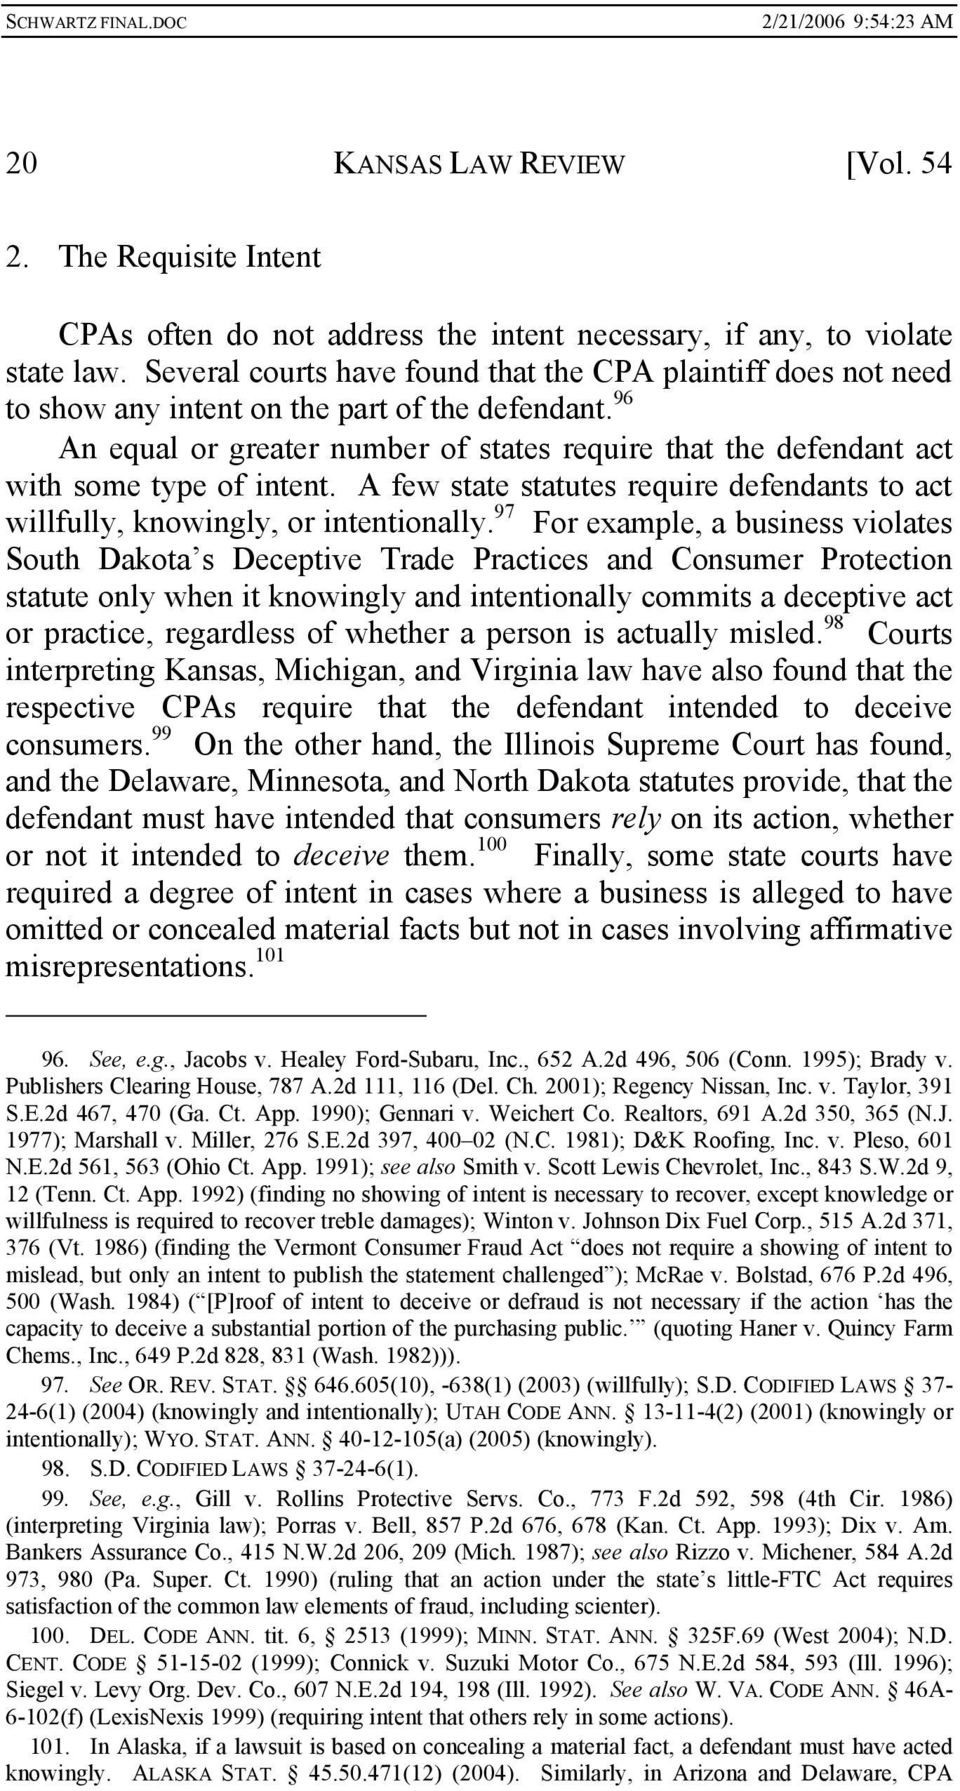 96 An equal or greater number of states require that the defendant act with some type of intent. A few state statutes require defendants to act willfully, knowingly, or intentionally.